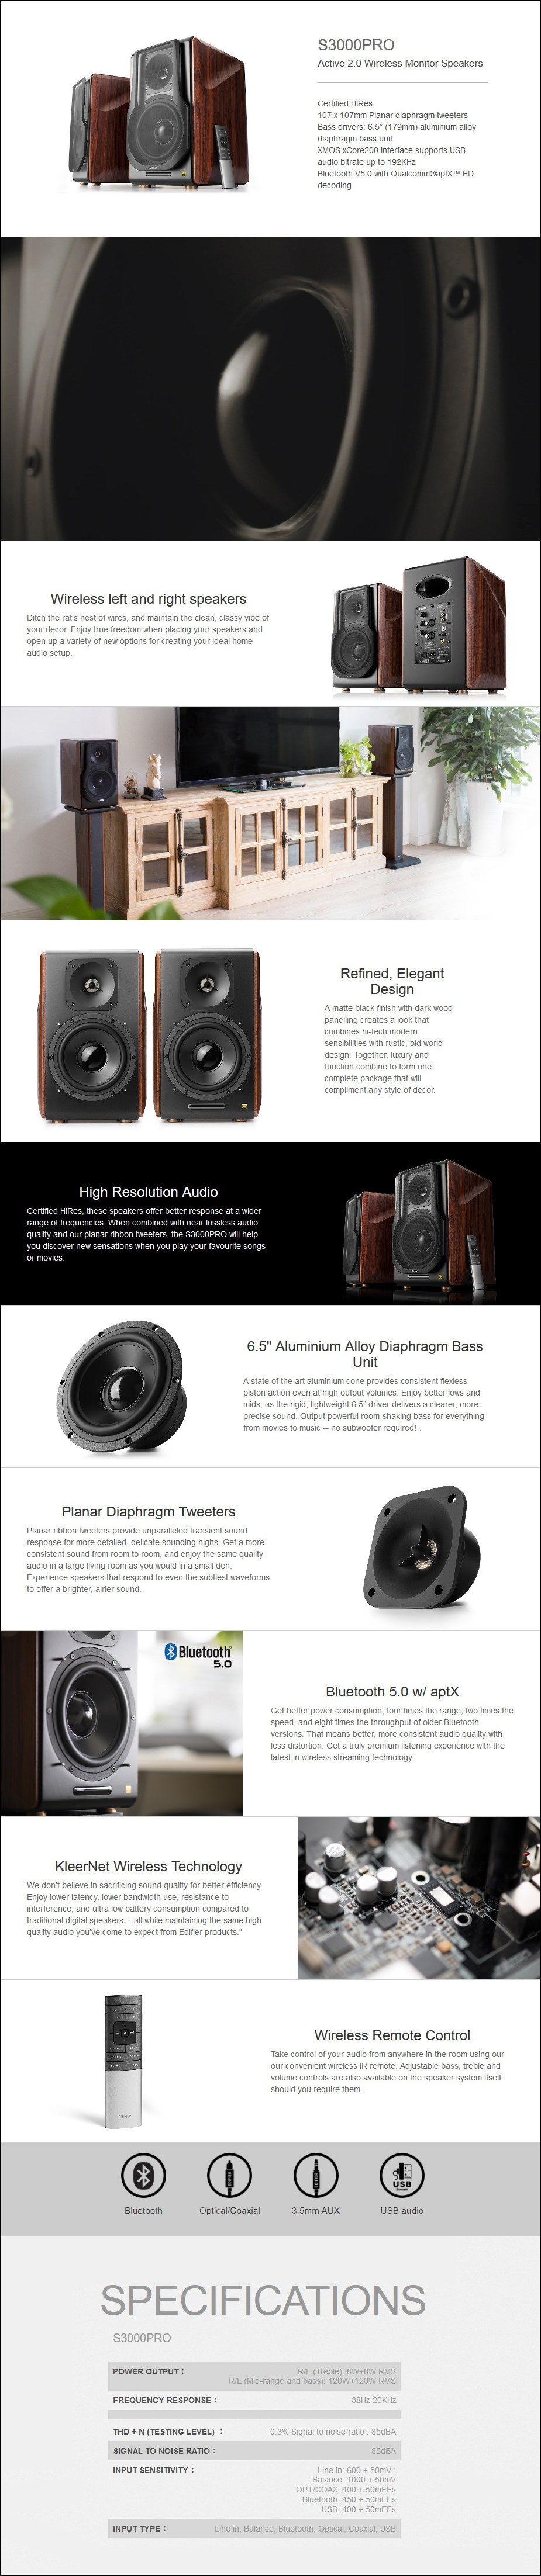 Edifier S3000PRO 2.0 Lifestyle Active Bluetooth Hi-Res Studio Speakers - Overview 1